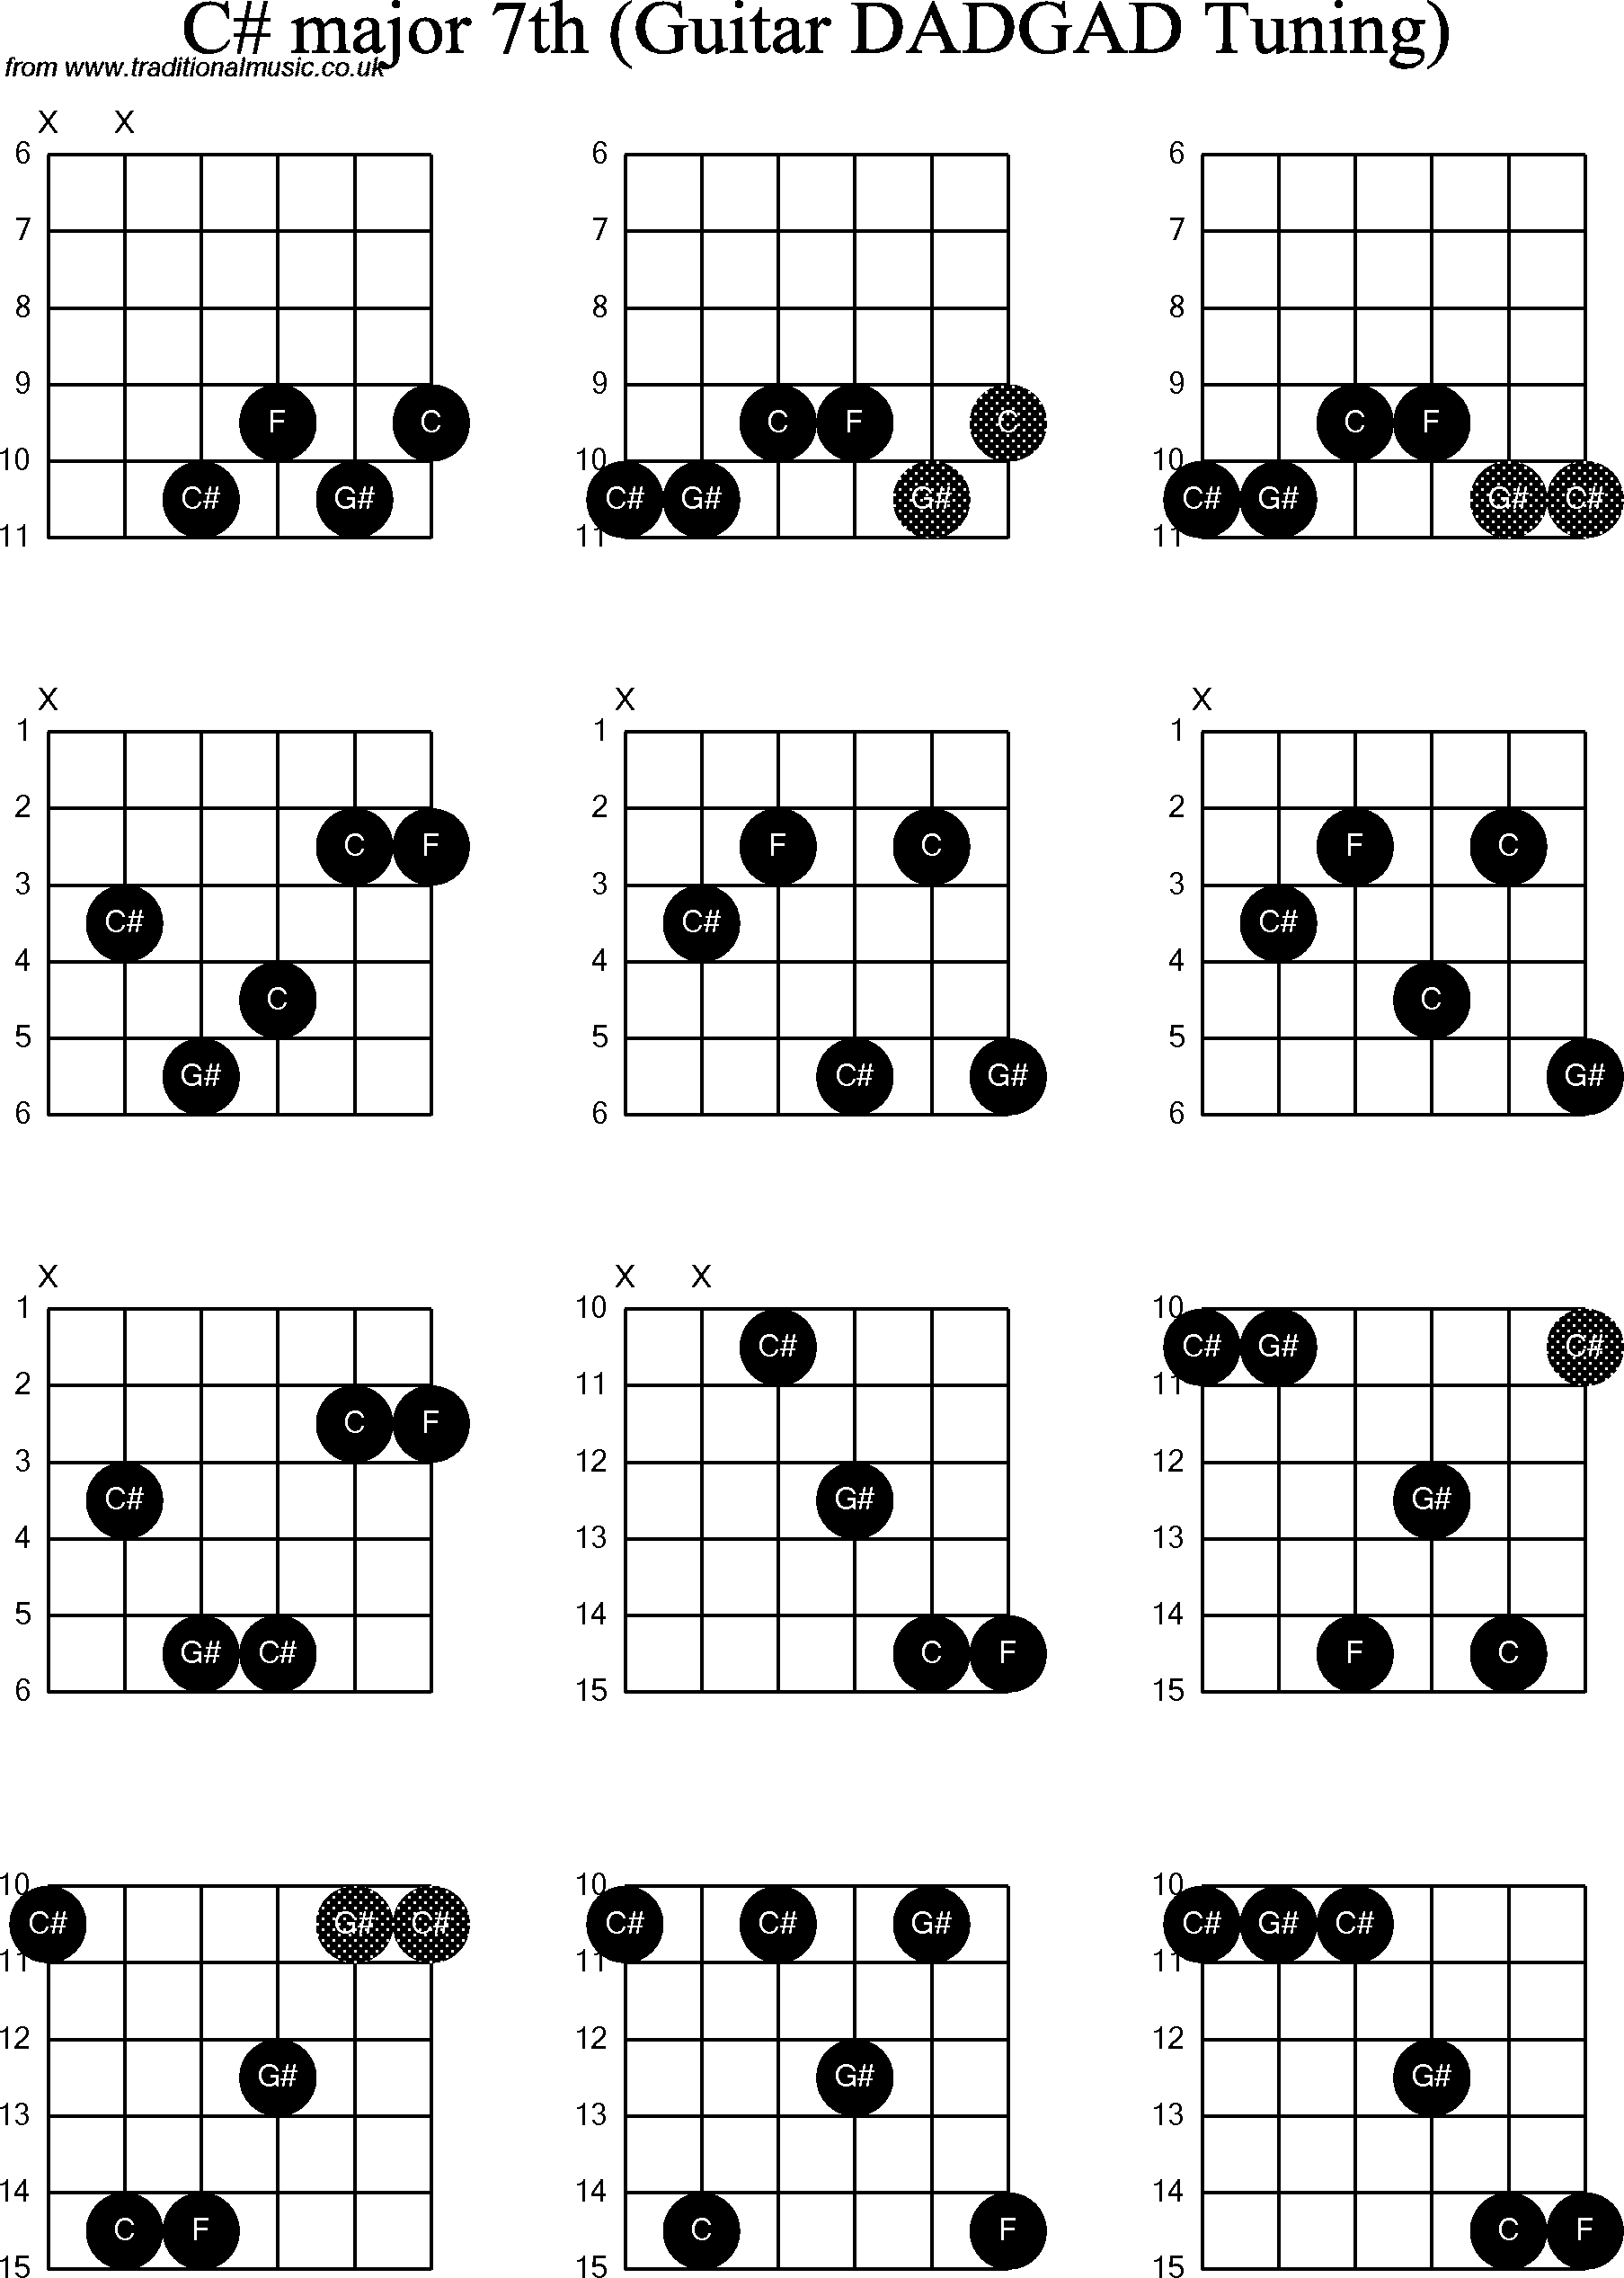 Chord diagrams d modal guitar dadgad c sharp major7th chord diagrams for d modal guitardadgad c sharp major7th hexwebz Image collections